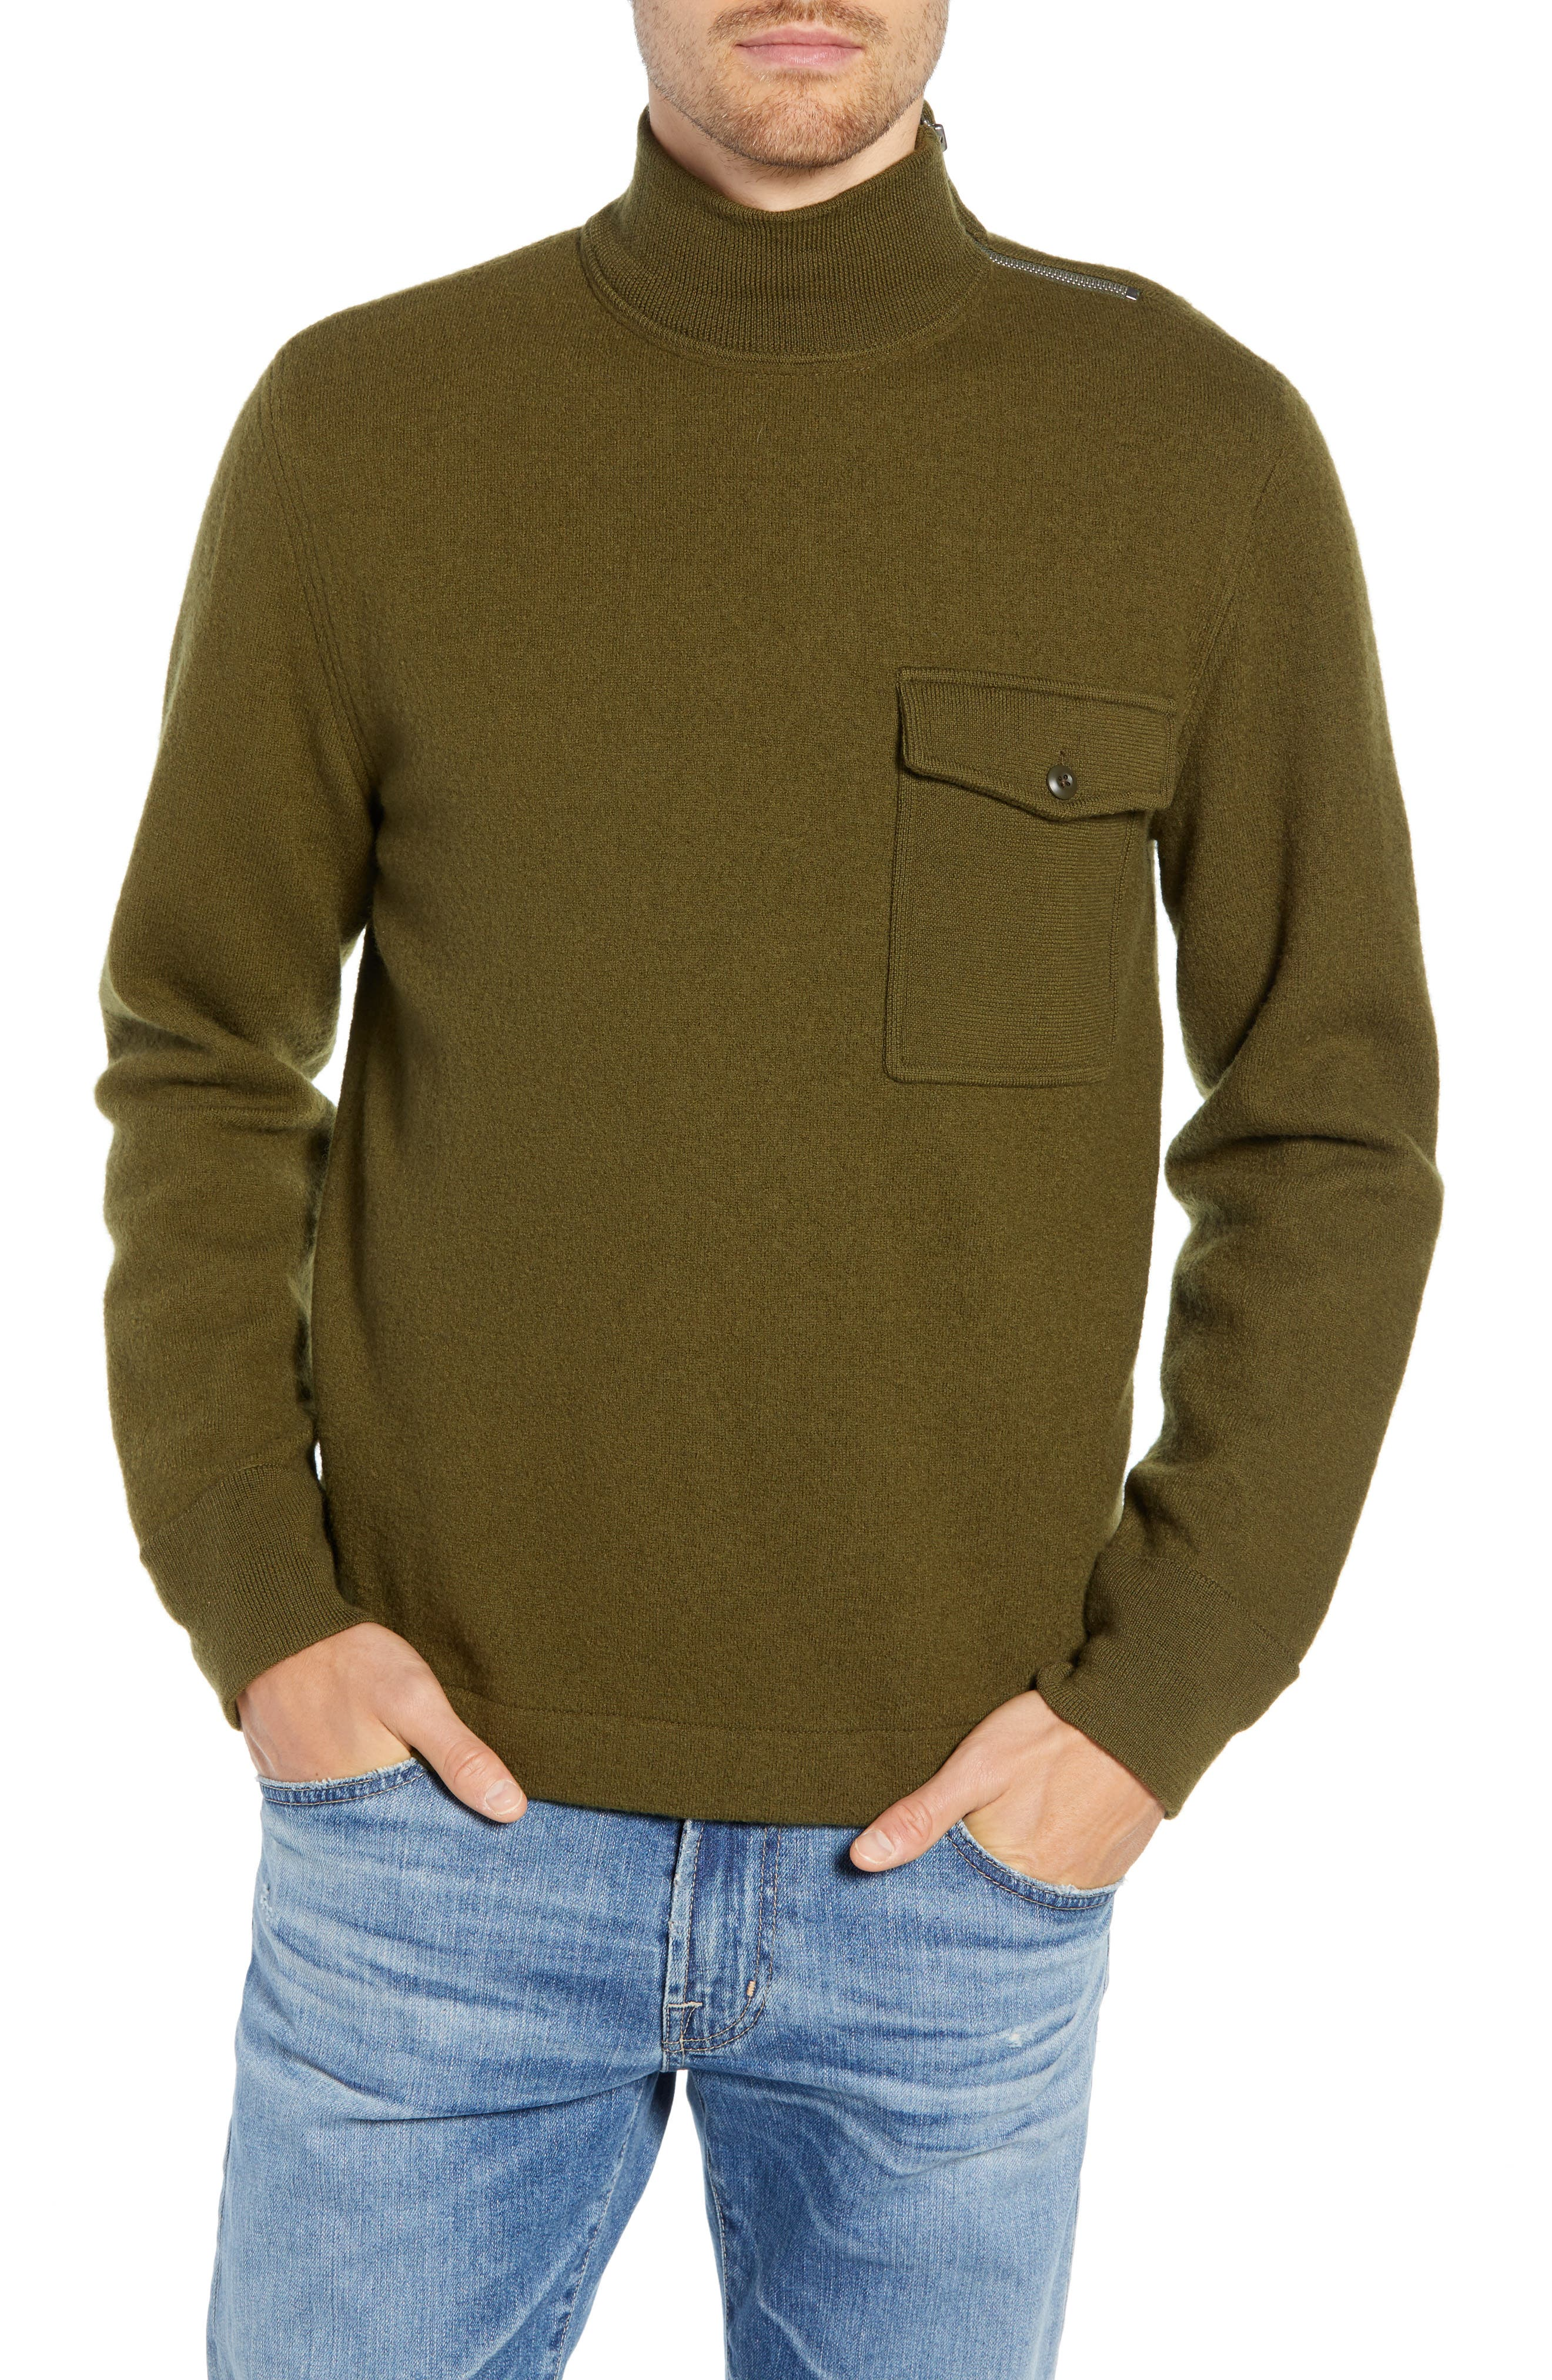 Wallace & Barnes Felted Merino Wool Mock Neck Pullover,                         Main,                         color, ORCHARD GREEN